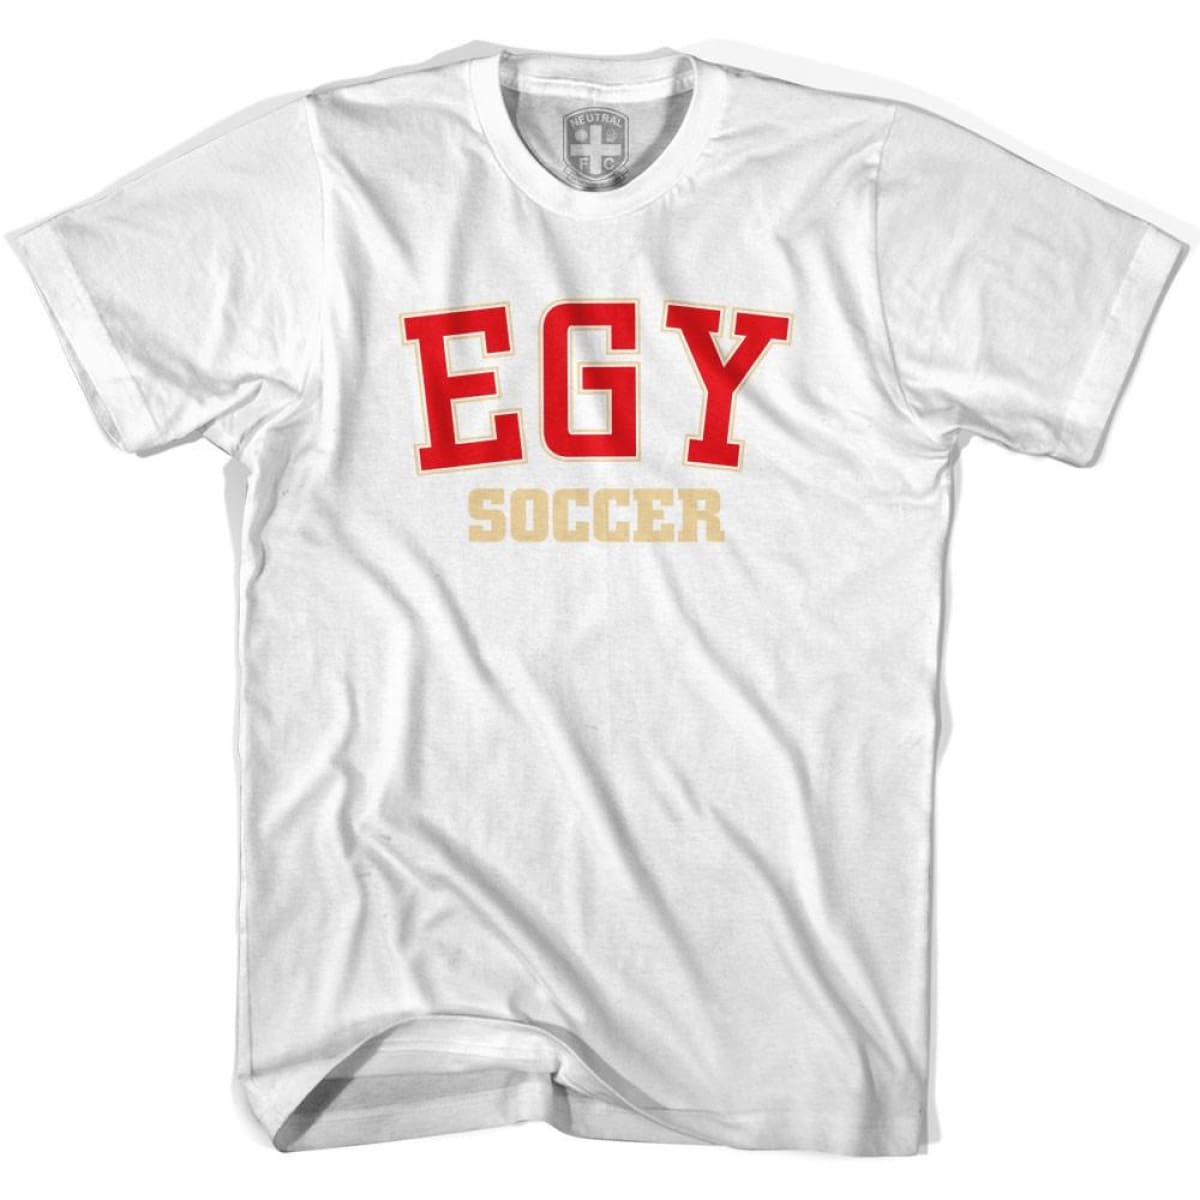 Egypt EGY Soccer Country Code T-shirt - White / Youth X-Small - Ultras Soccer T-shirts